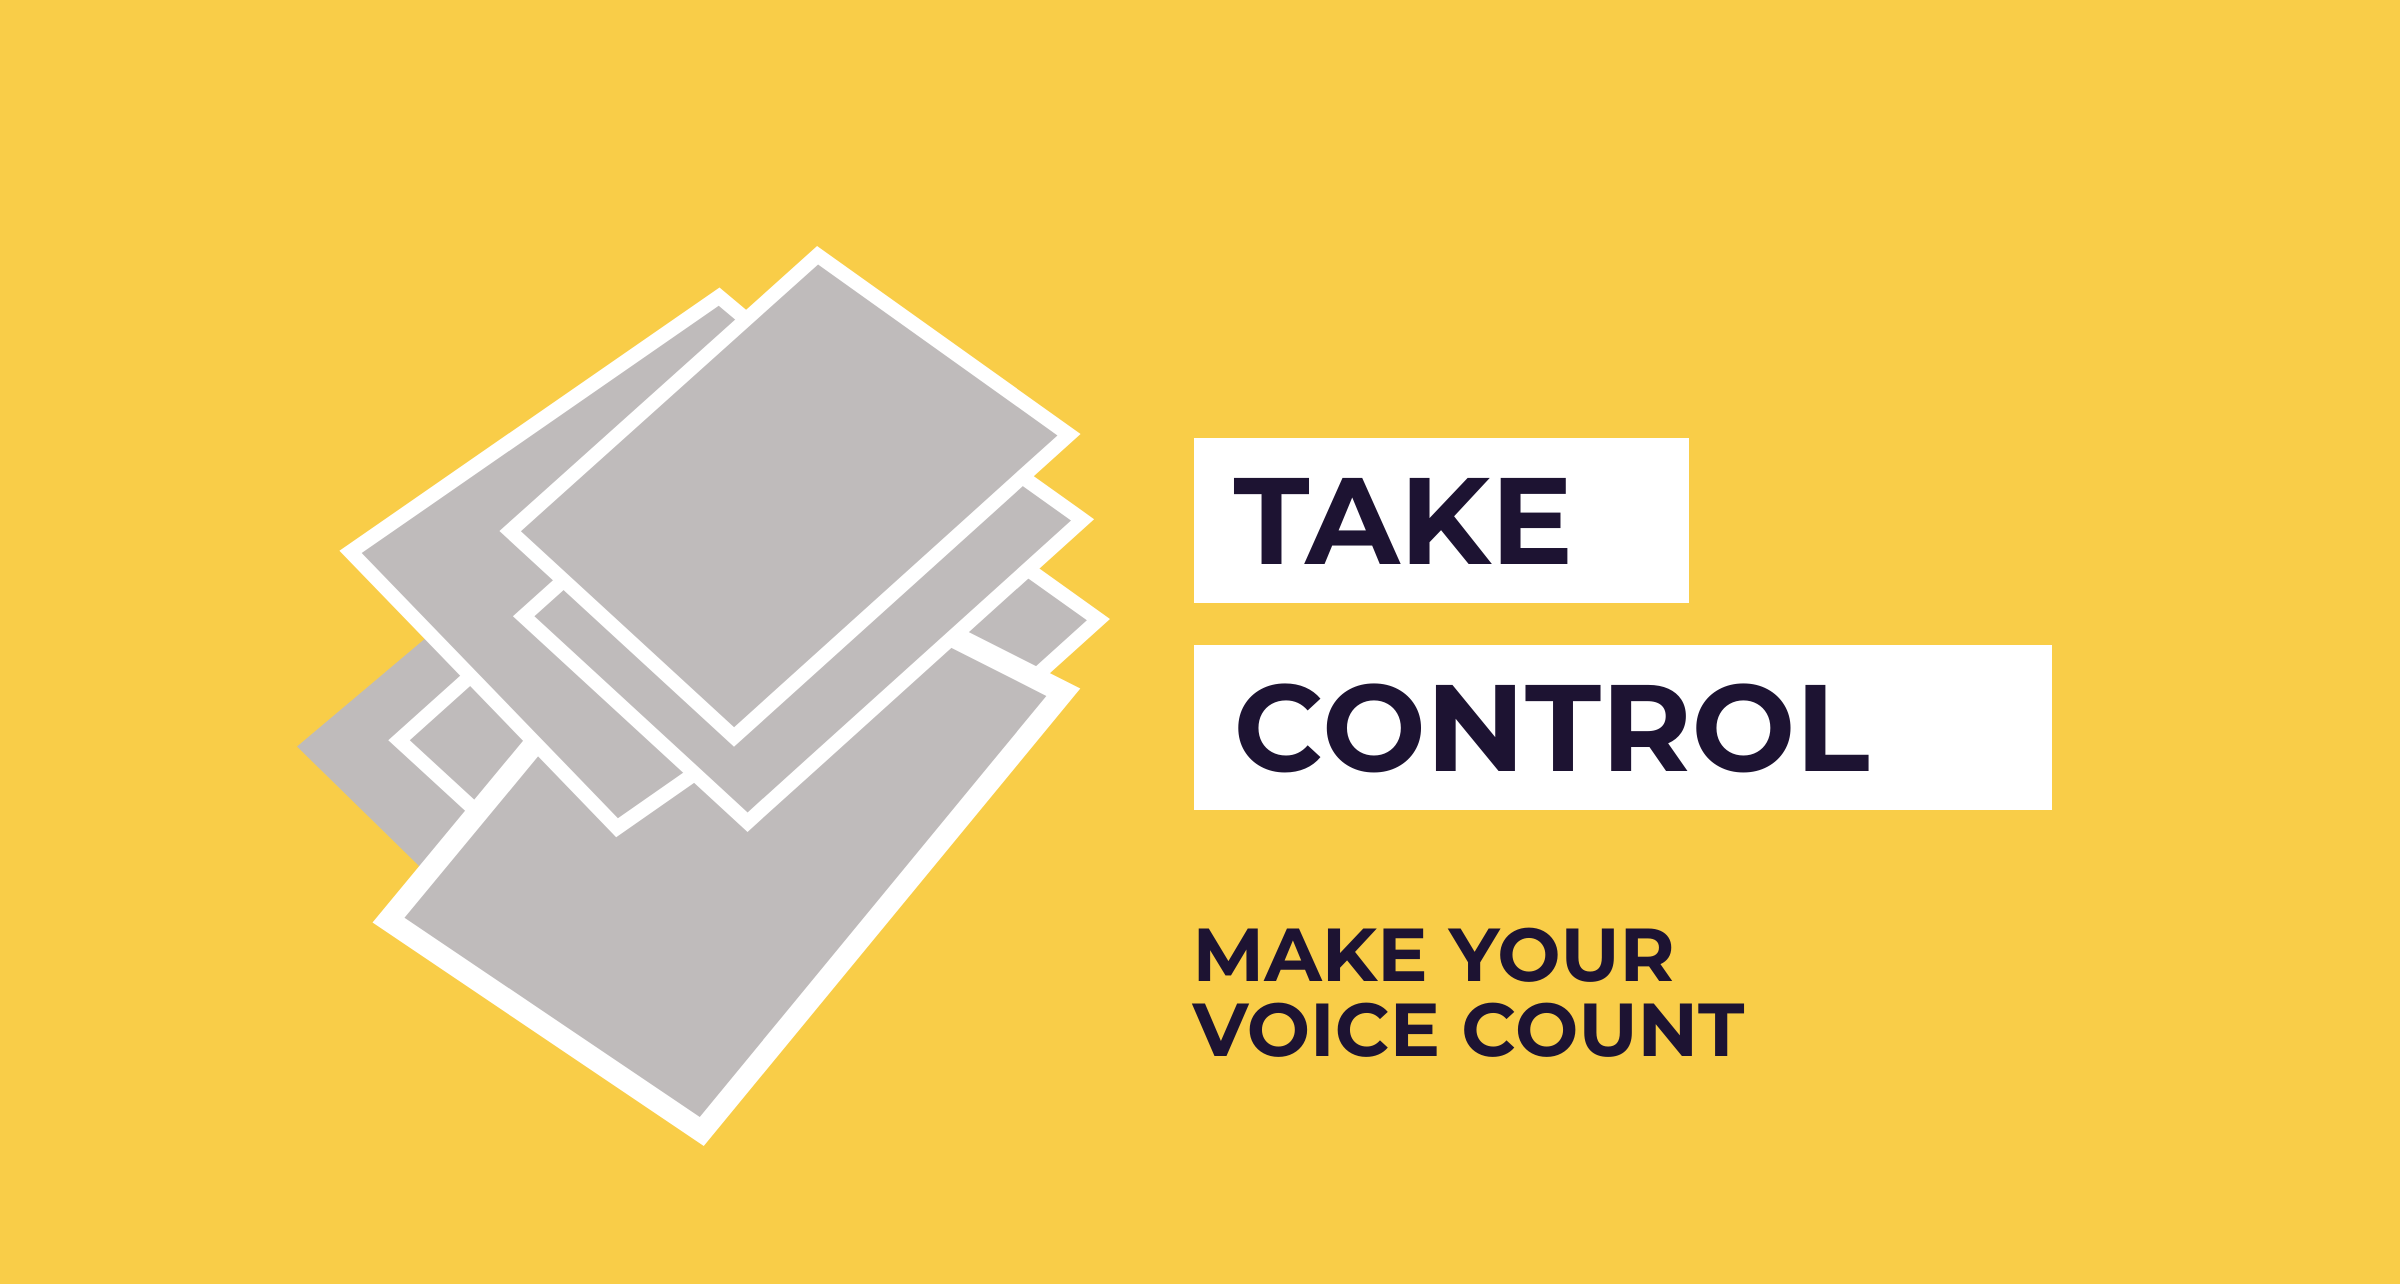 Take control: make your voice count